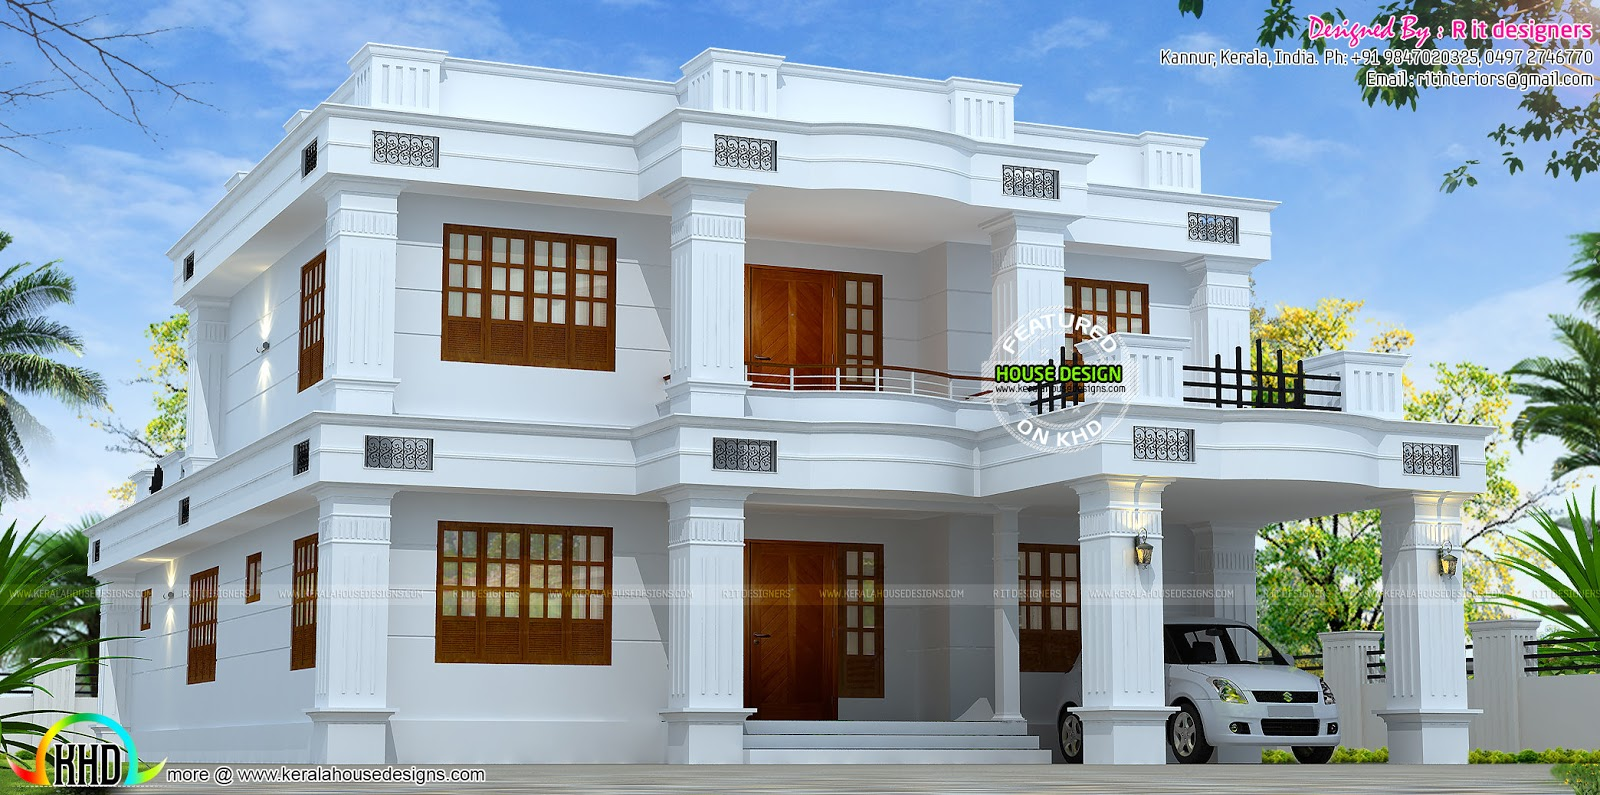 February 2016 kerala home design and floor plans House design